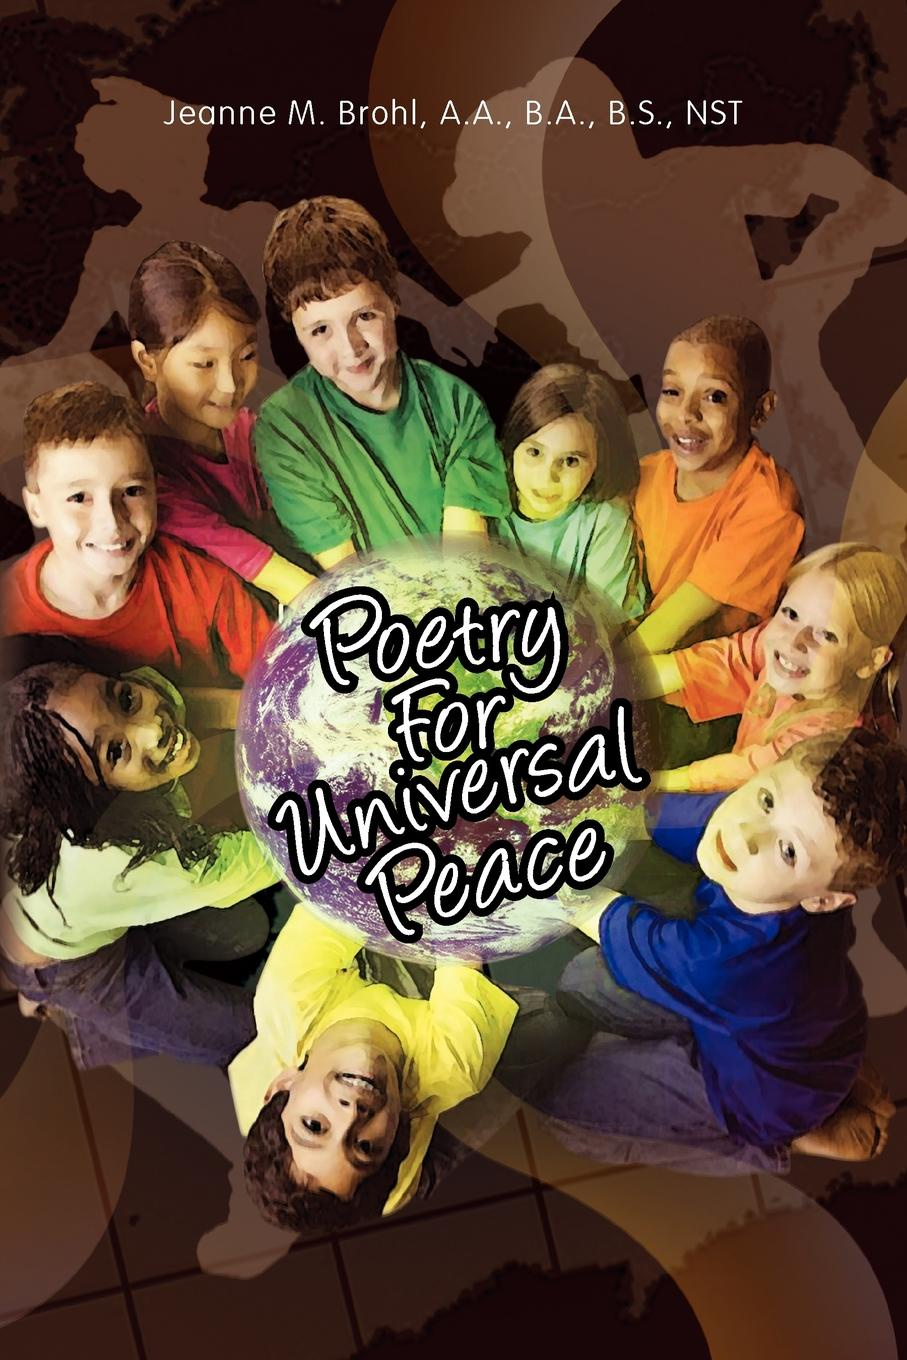 лучшая цена Jeanne M. a. a. B. a. B. S. Nst Brohl Poetry for Universal Peace